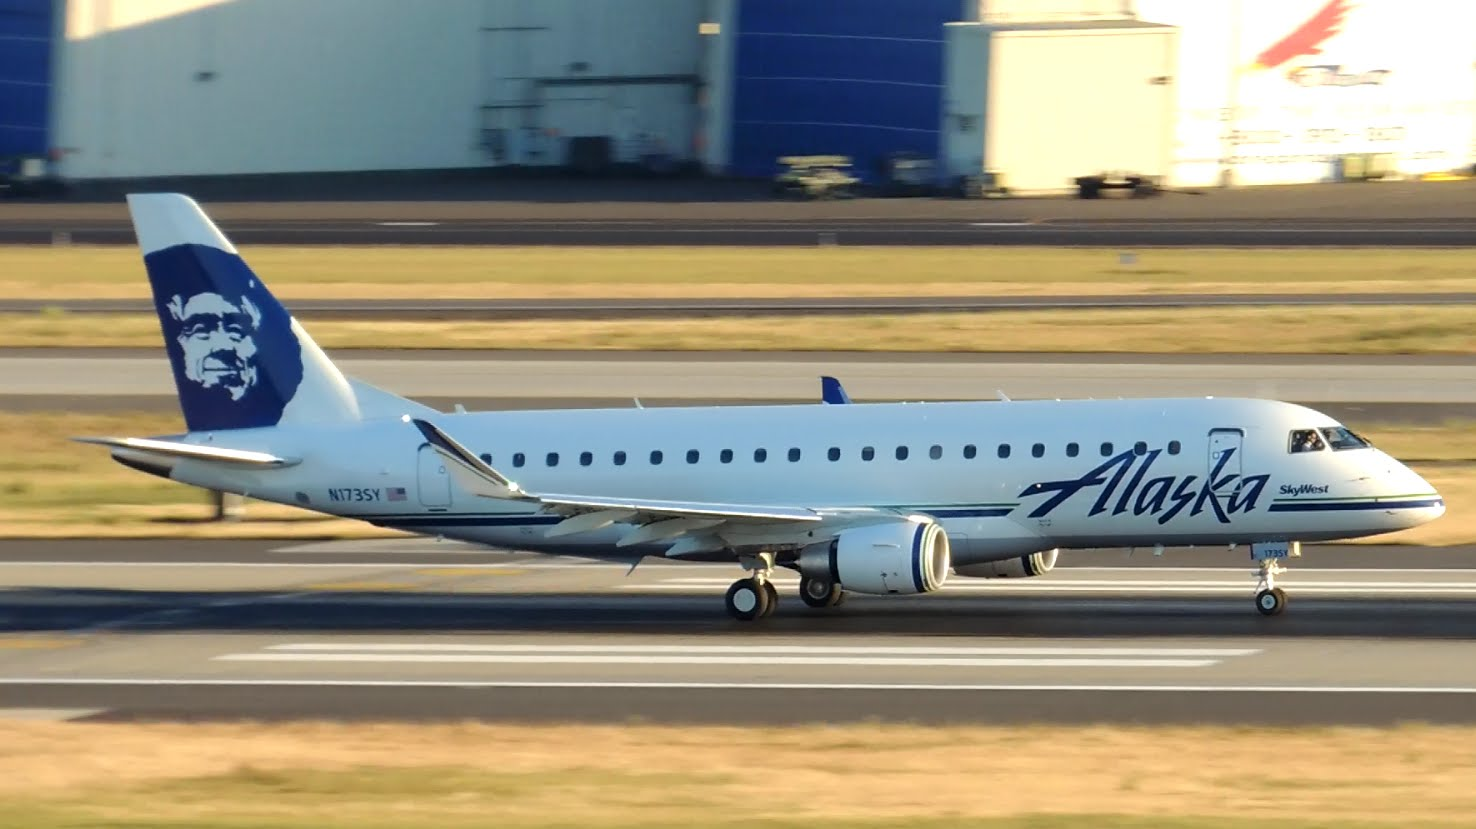 Embraer ERJ-175 da Alaska Airlines (SkyWest)